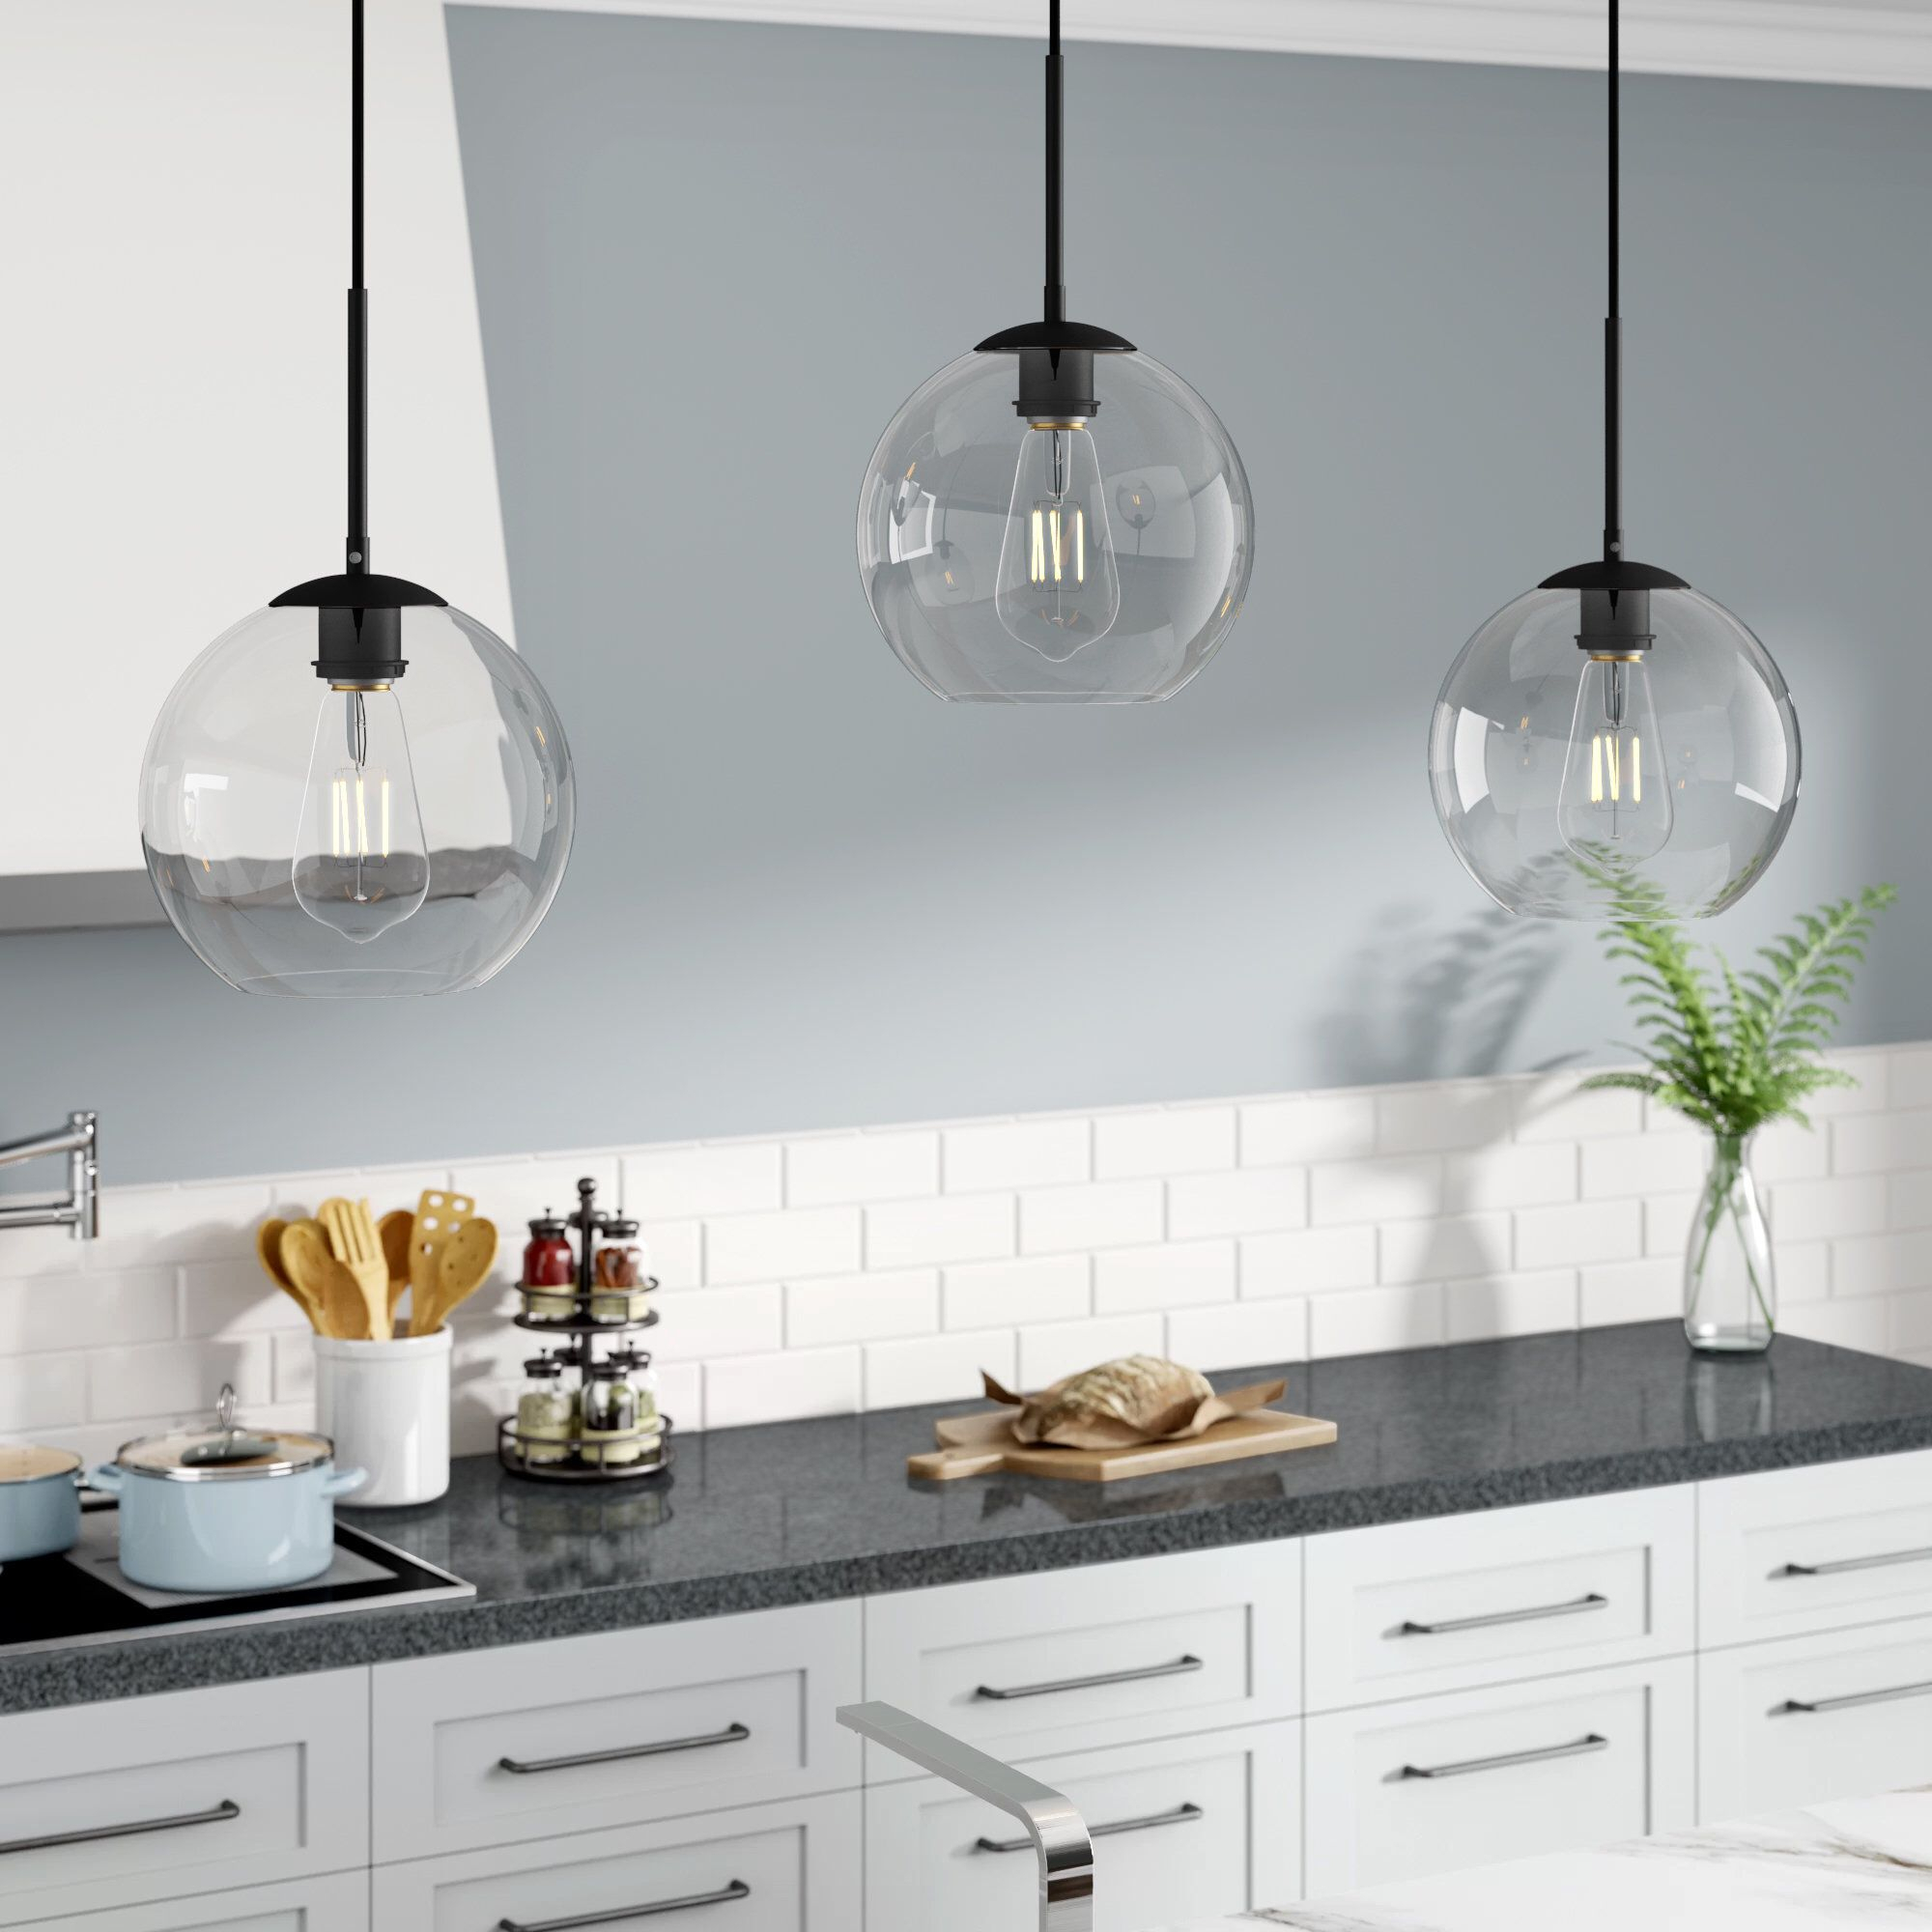 Yearwood 3 Light Kitchen Island Pendant | A Kitchen Island With Neal 1 Light Single Teardrop Pendants (View 14 of 30)